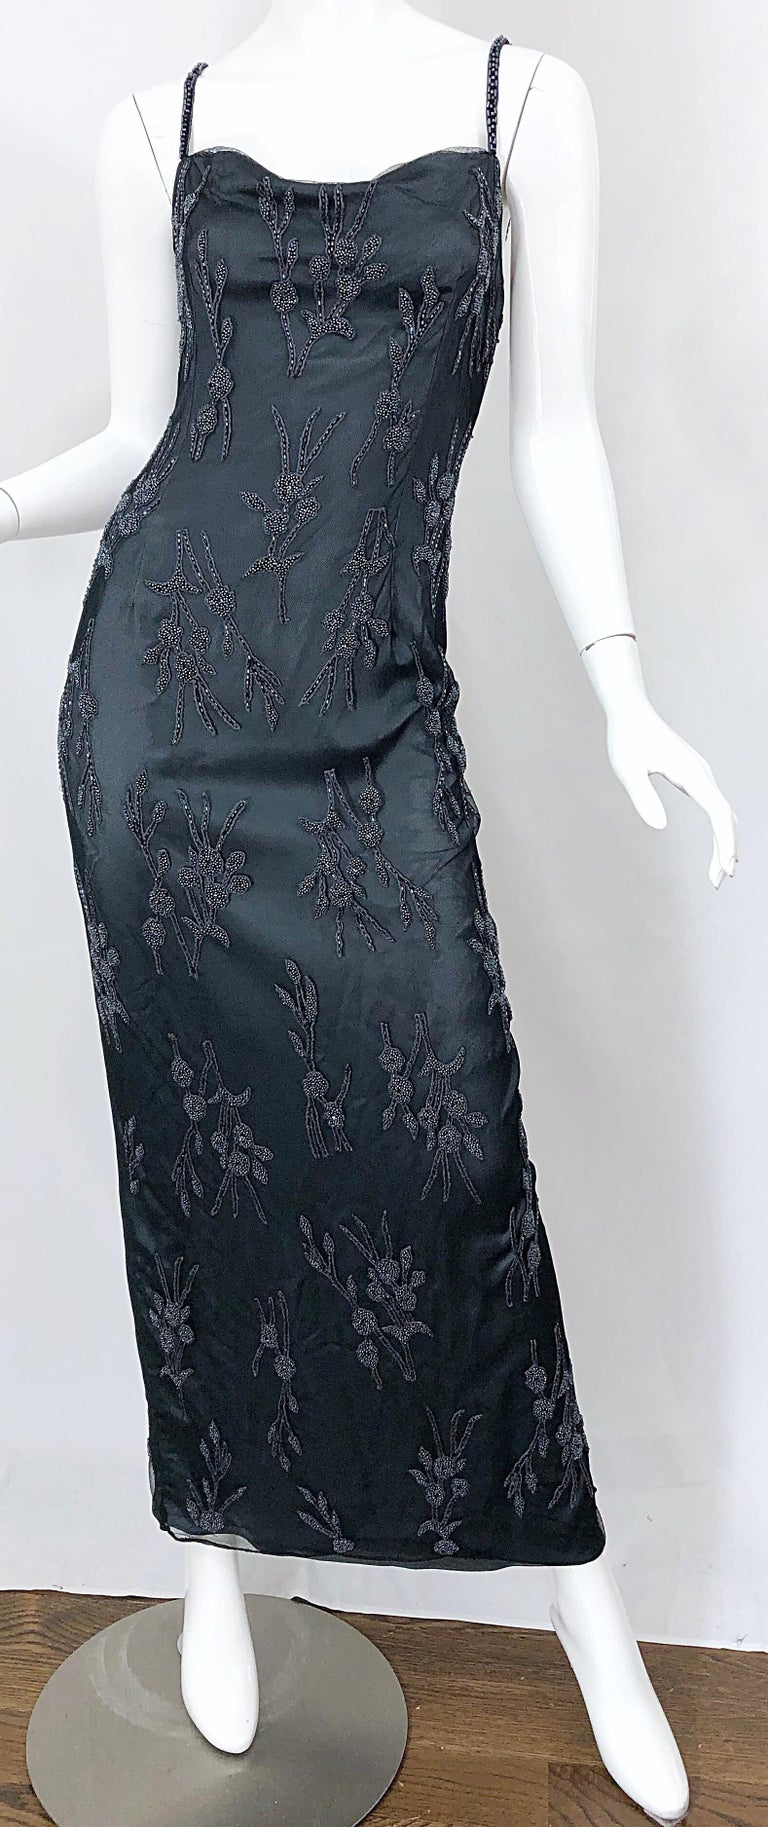 Vintage Bob Mackie Size 8 Grey Beaded 1990s Sequin Sleeveless 90s Evening Gown For Sale 5